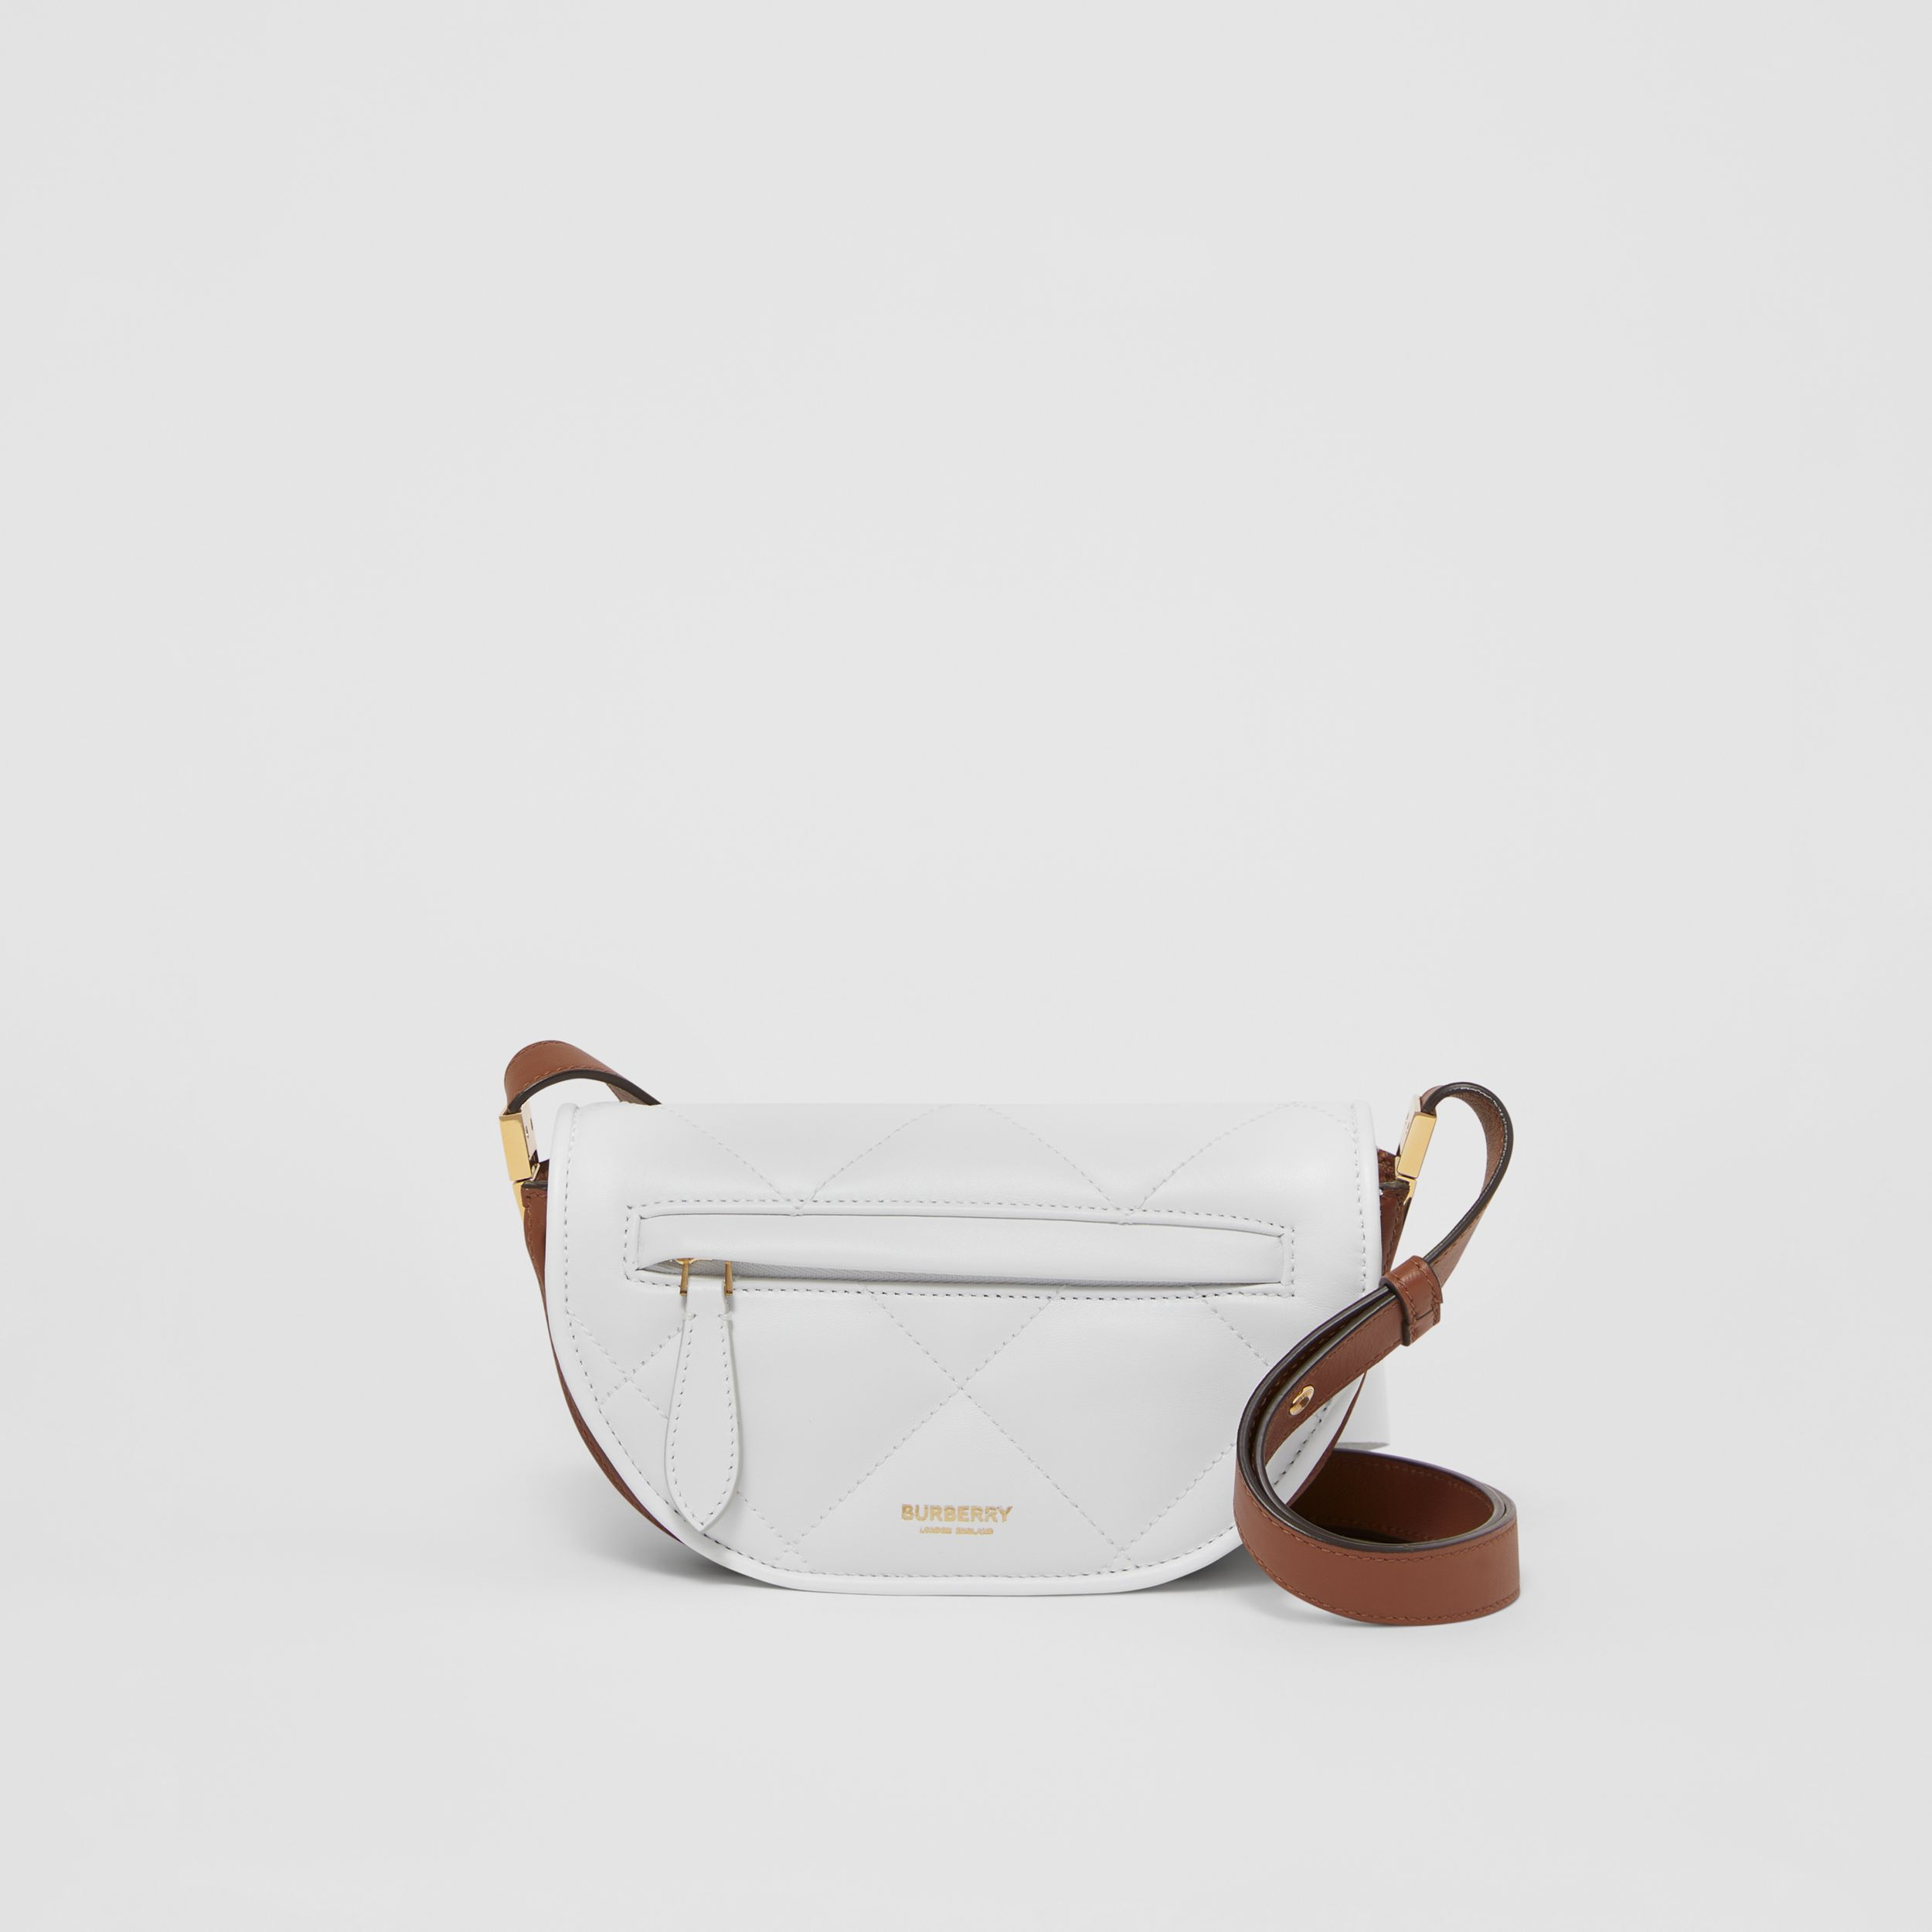 Borsa Olympia mini in pelle di agnello trapuntata (Bianco/marroncino) - Donna | Burberry - 1